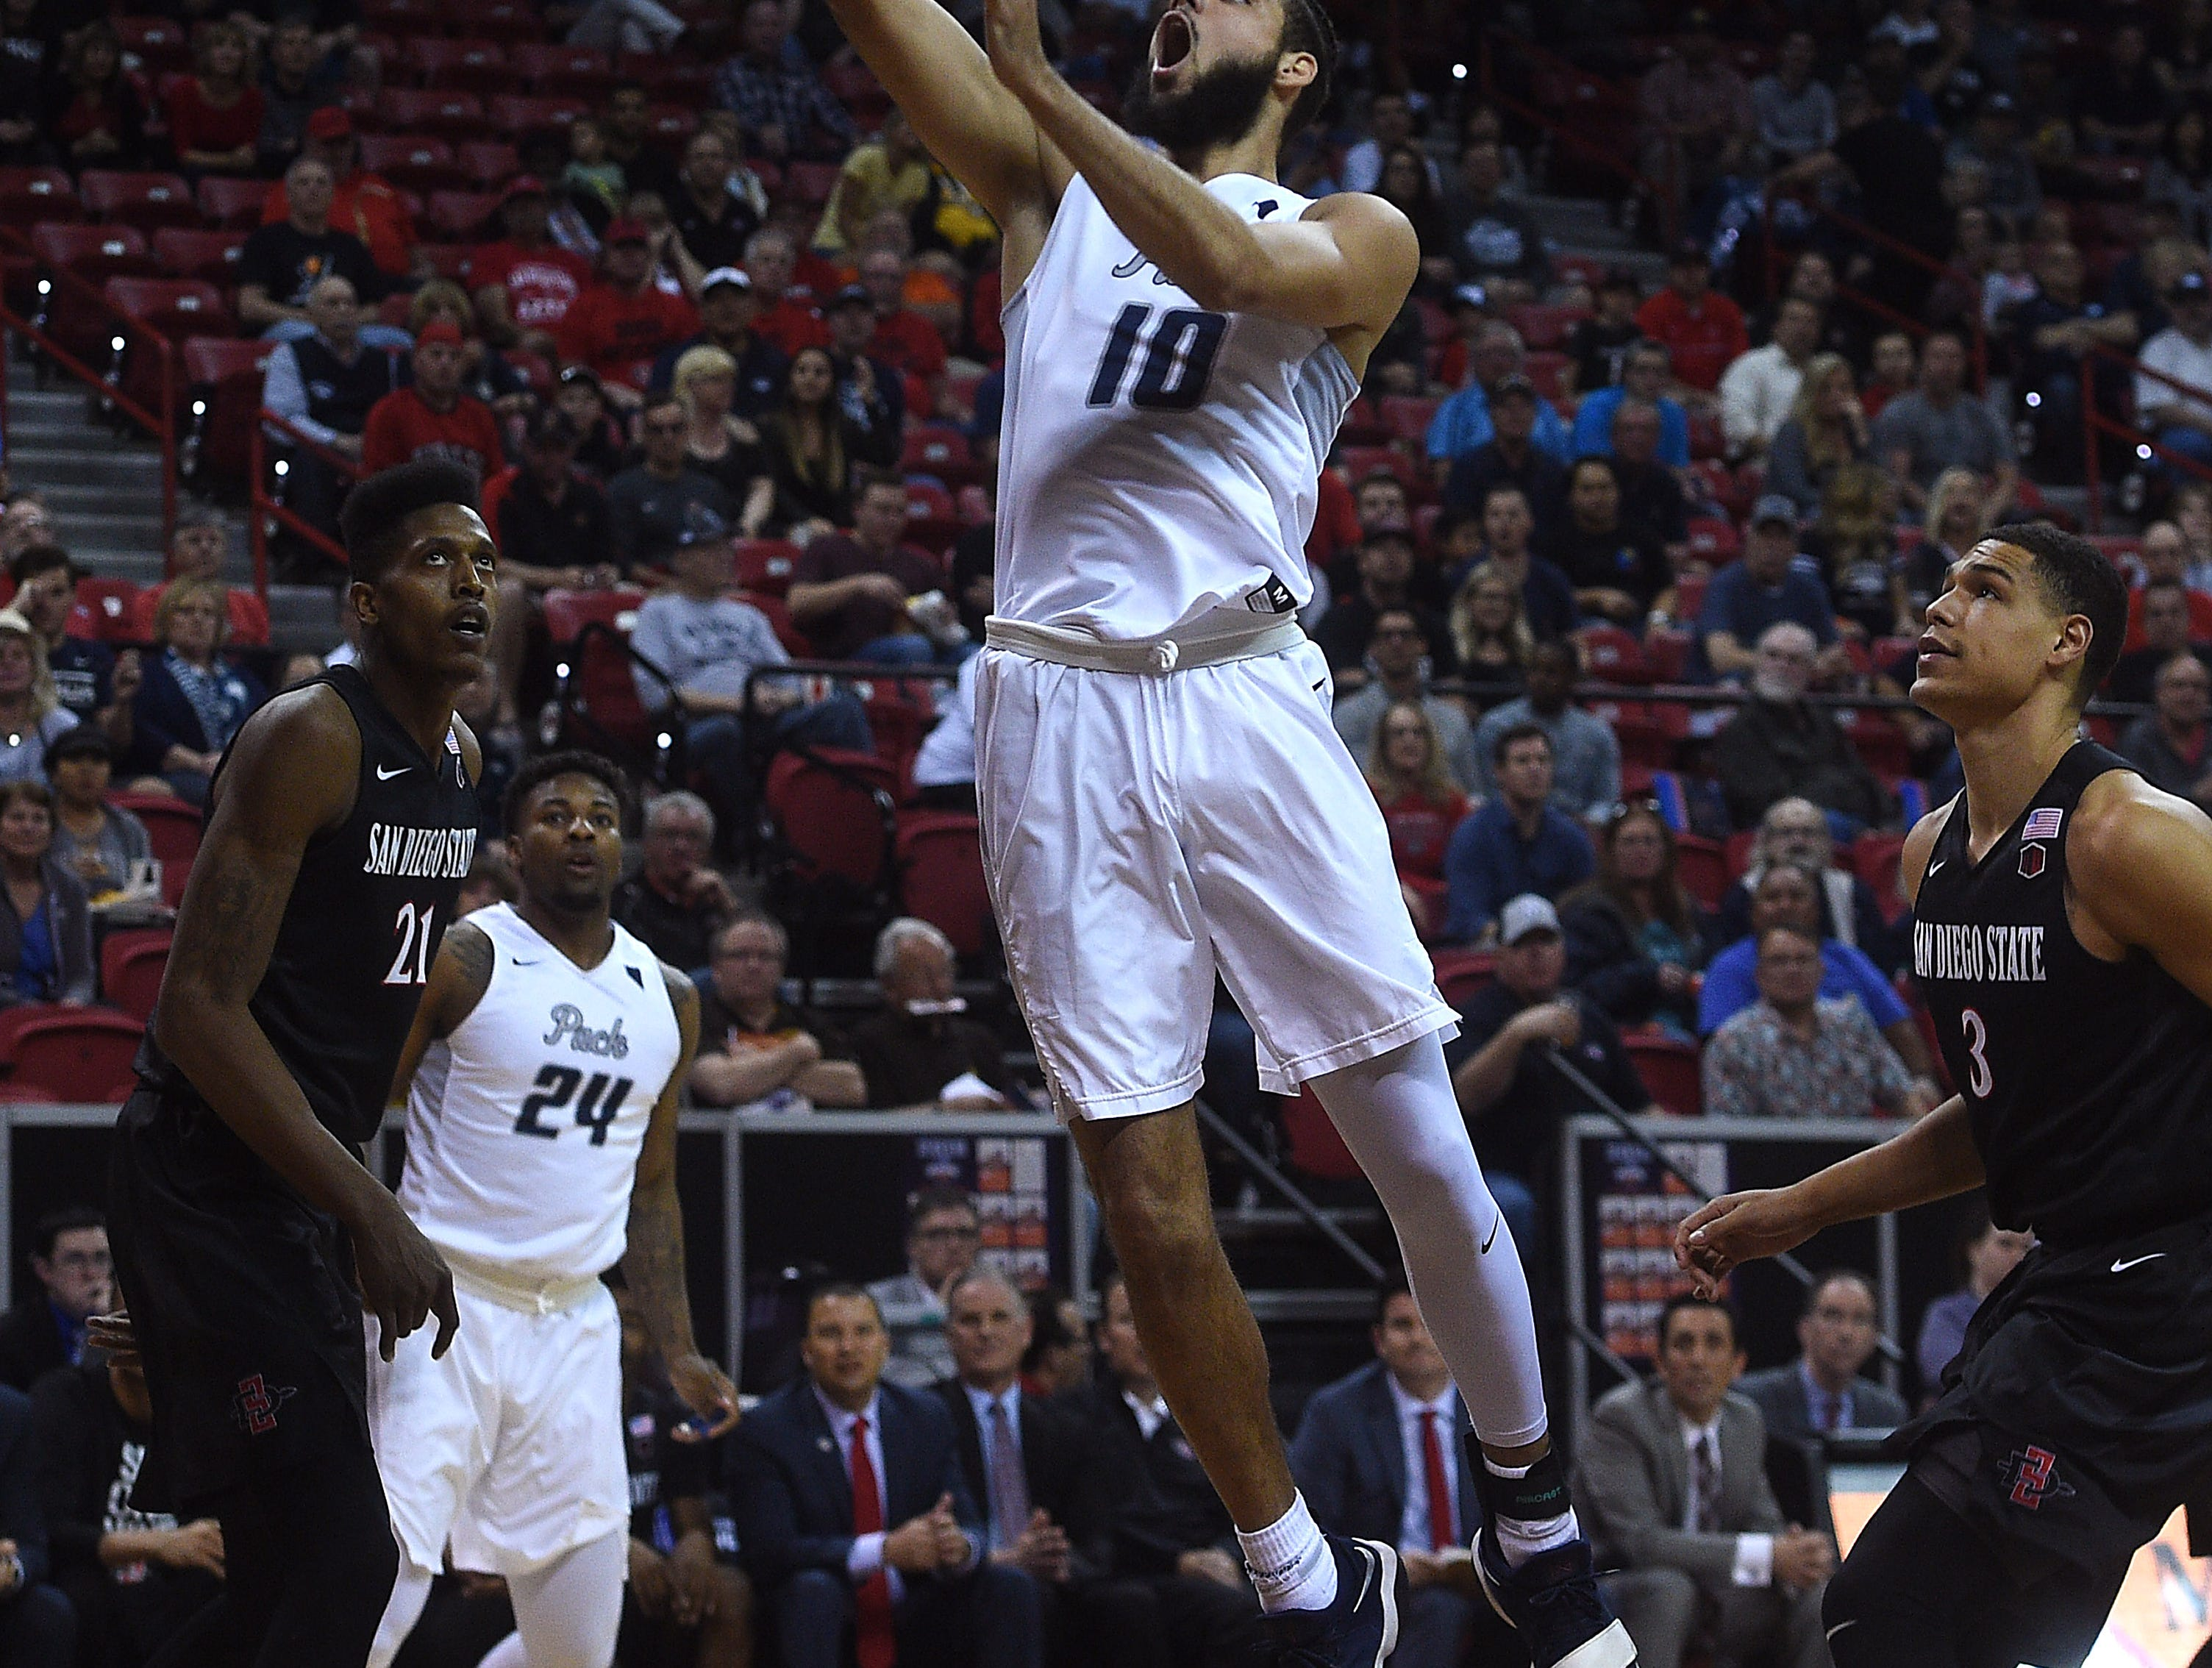 Nevada's Caleb Martin (10) drives to the basket while taking on San Diego State during the Mountain West men's basketball tournament at the Thomas & Mack Center in Las Vegas on March 9, 2018.